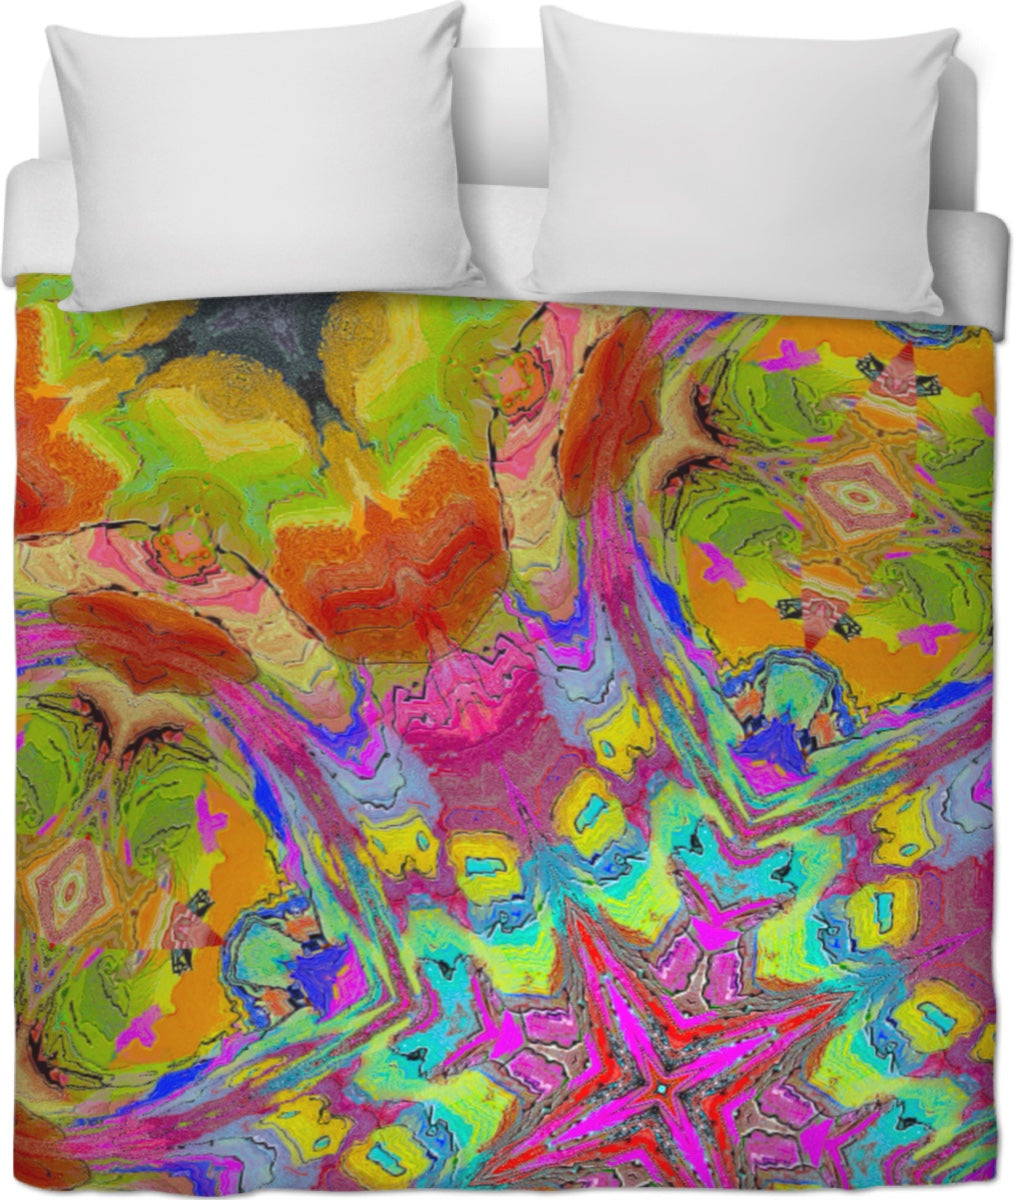 Duvet covers Pattern Collection163